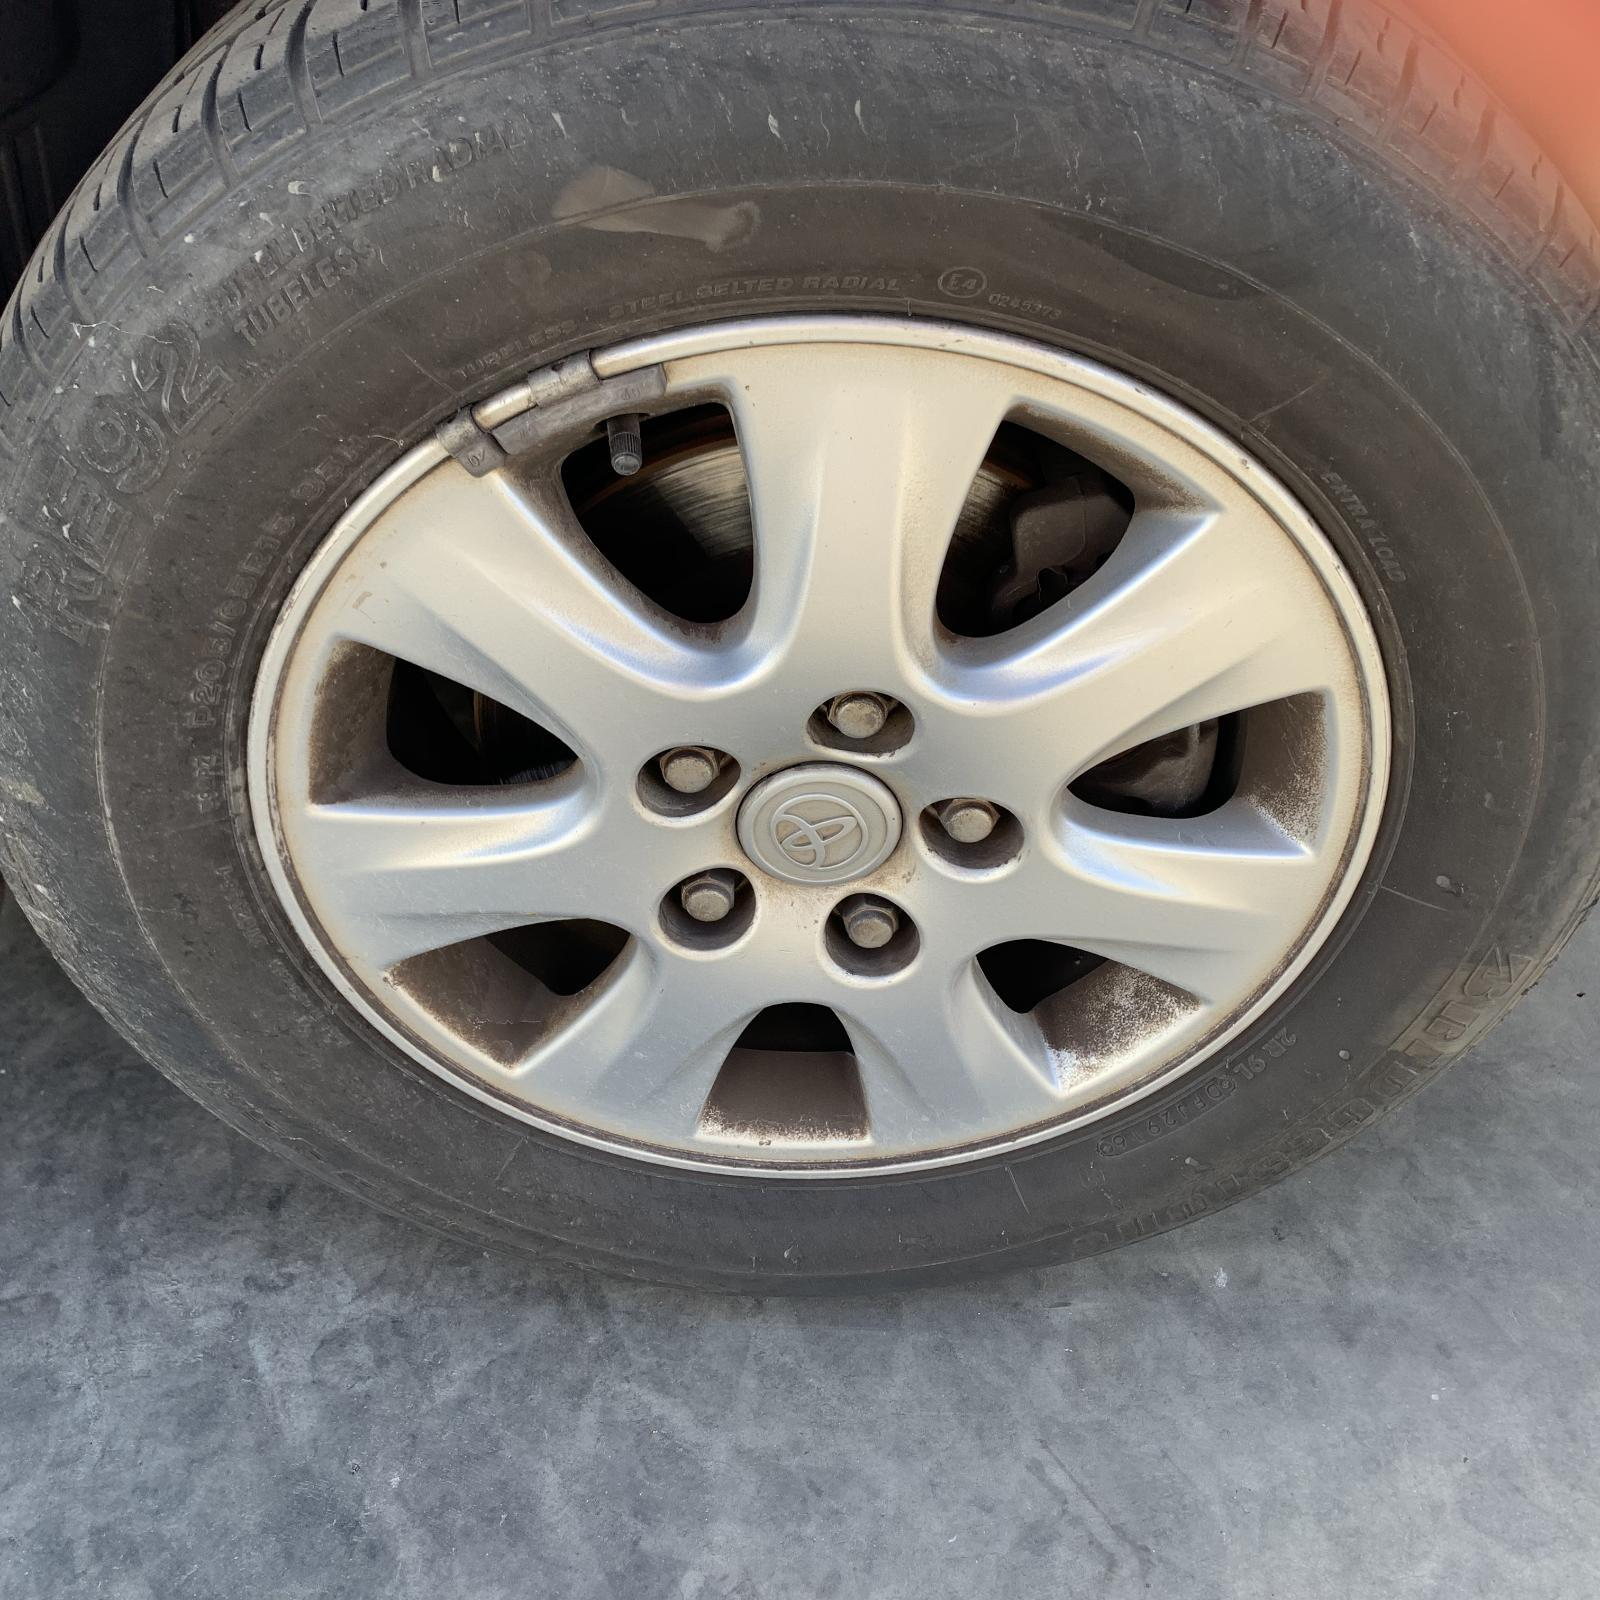 TOYOTA CAMRY, Wheel Mag, FACTORY, 15X6.0IN, SK36, 7 SPOKE, 08/02-05/06